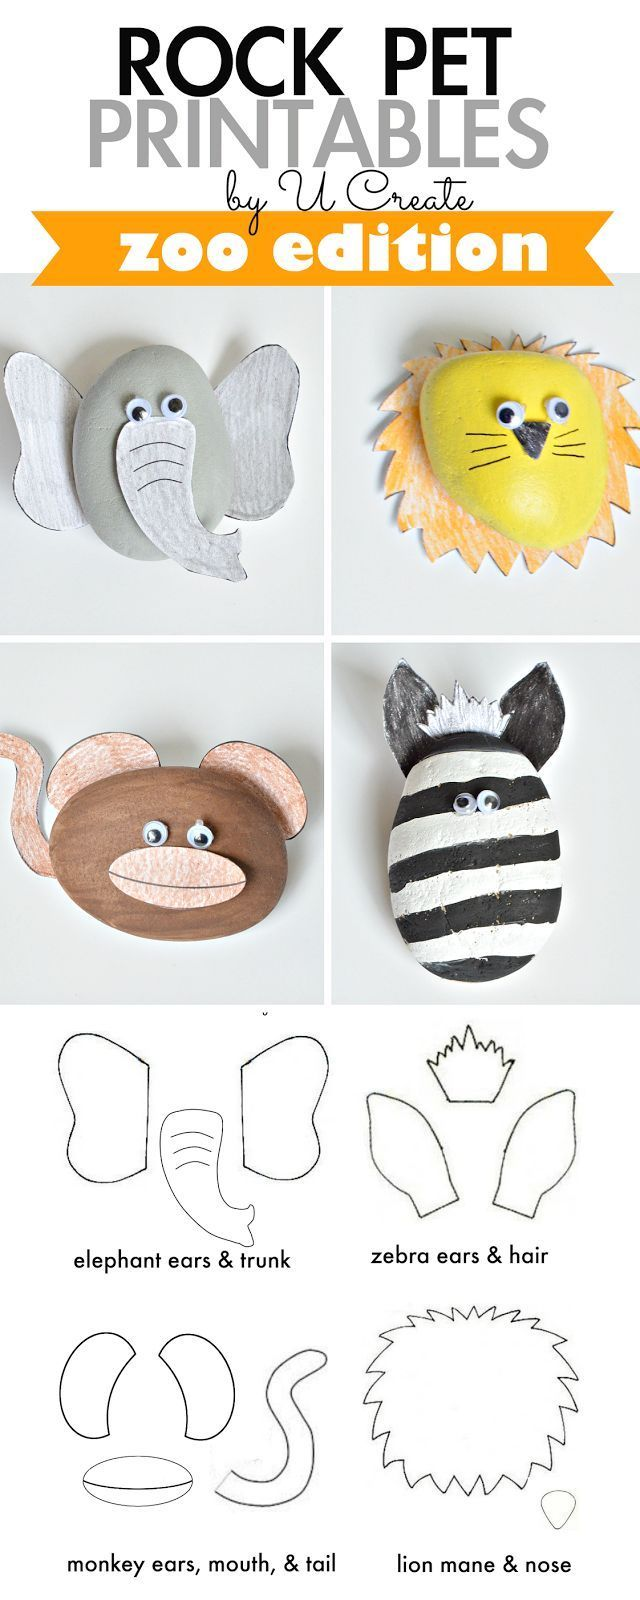 Rock Pet Printables Zoo Edition Craft activities for